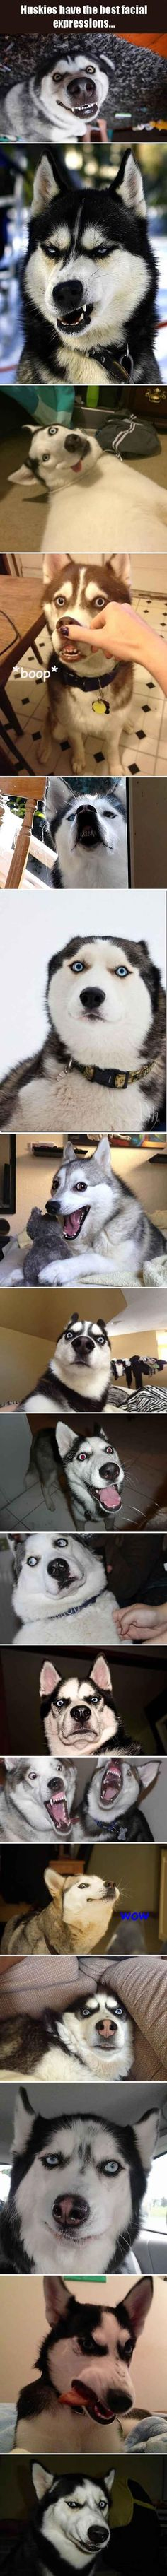 Huskies Have The Best Facial Expressions  17 Pics